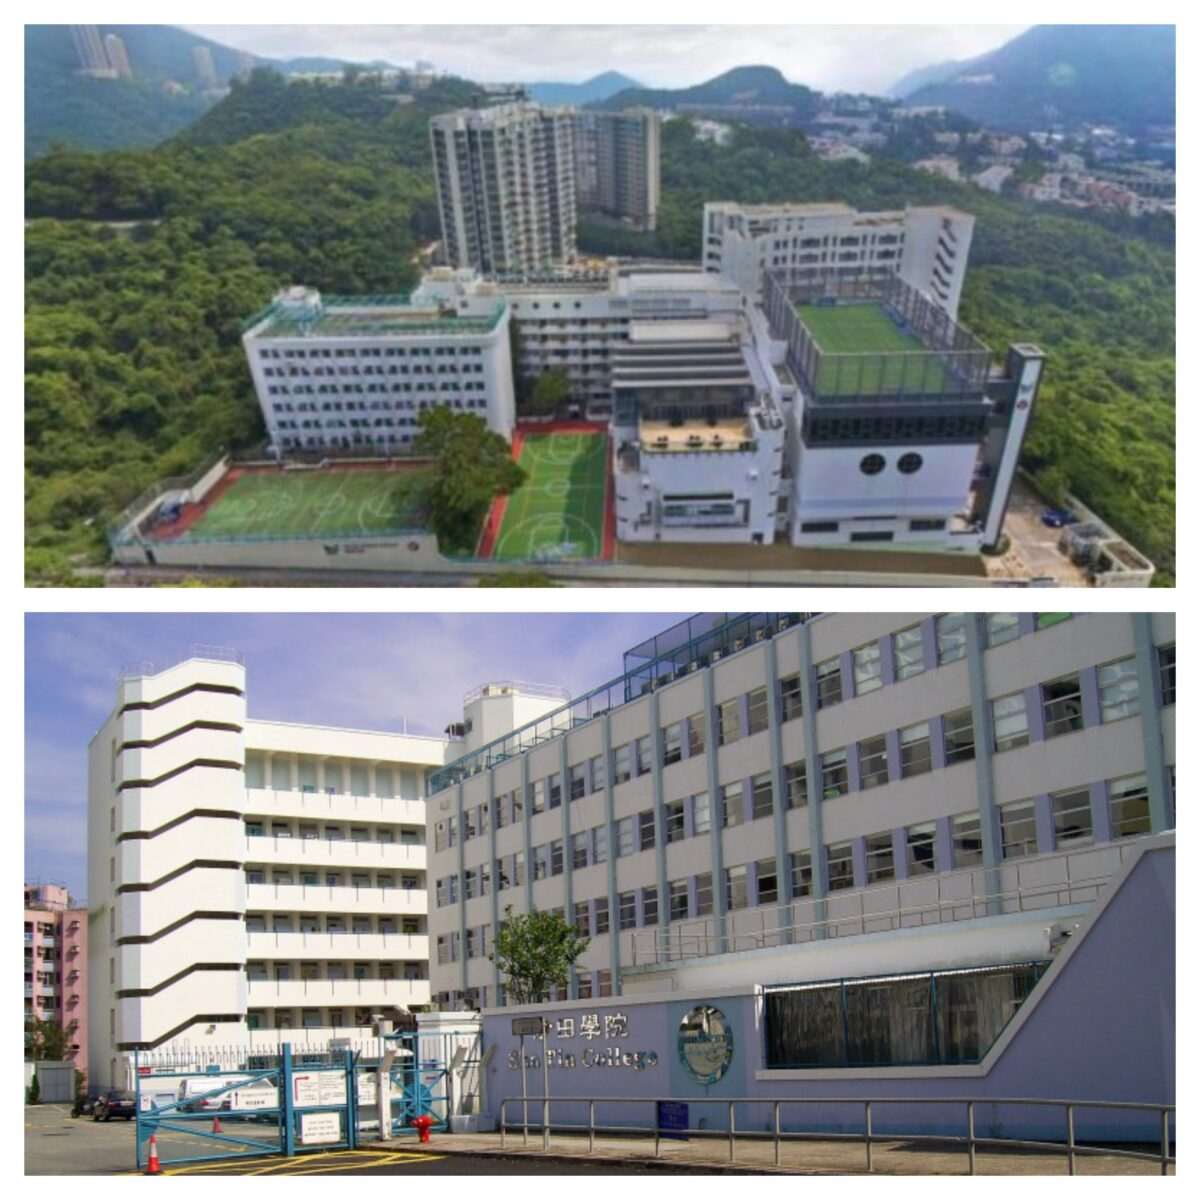 South Islands School and Shatin College